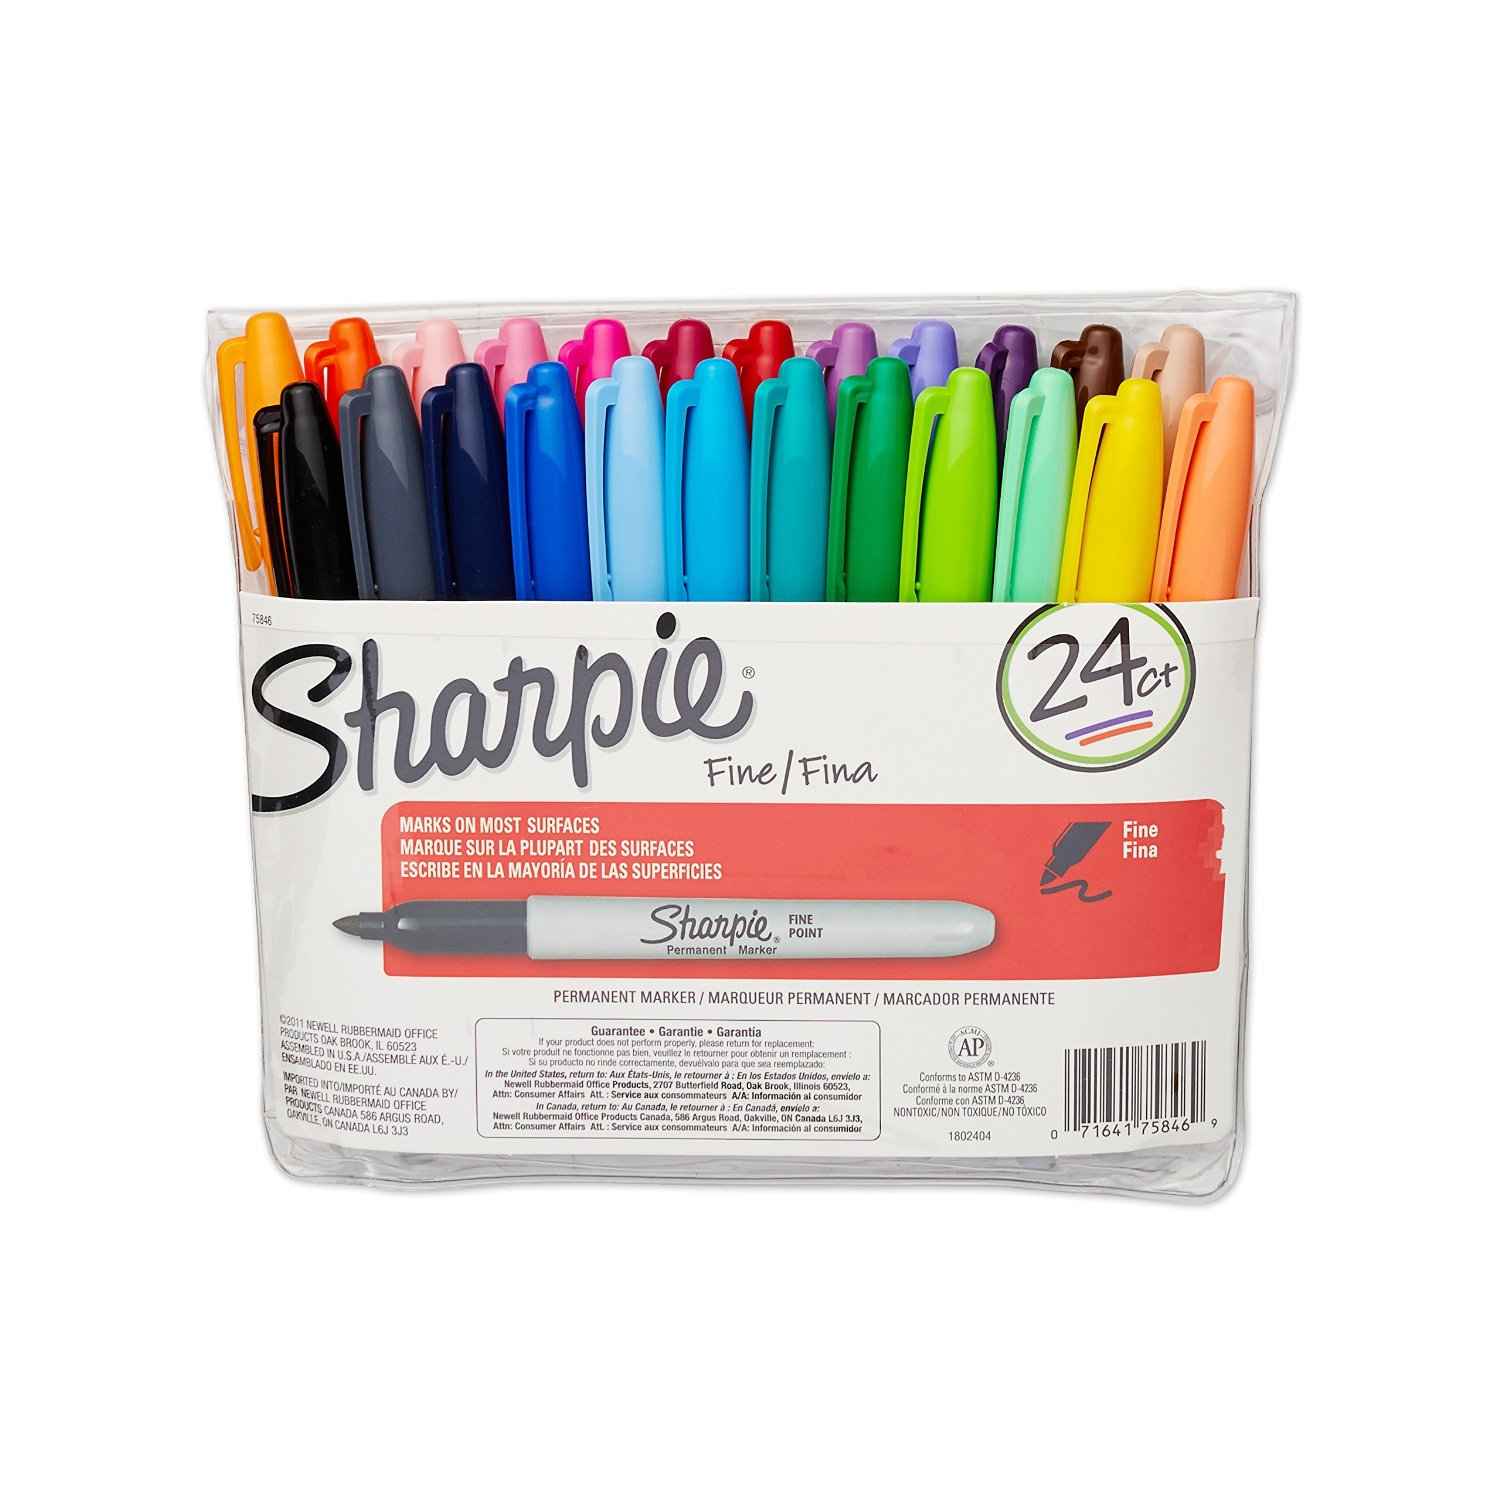 sharpie-pack